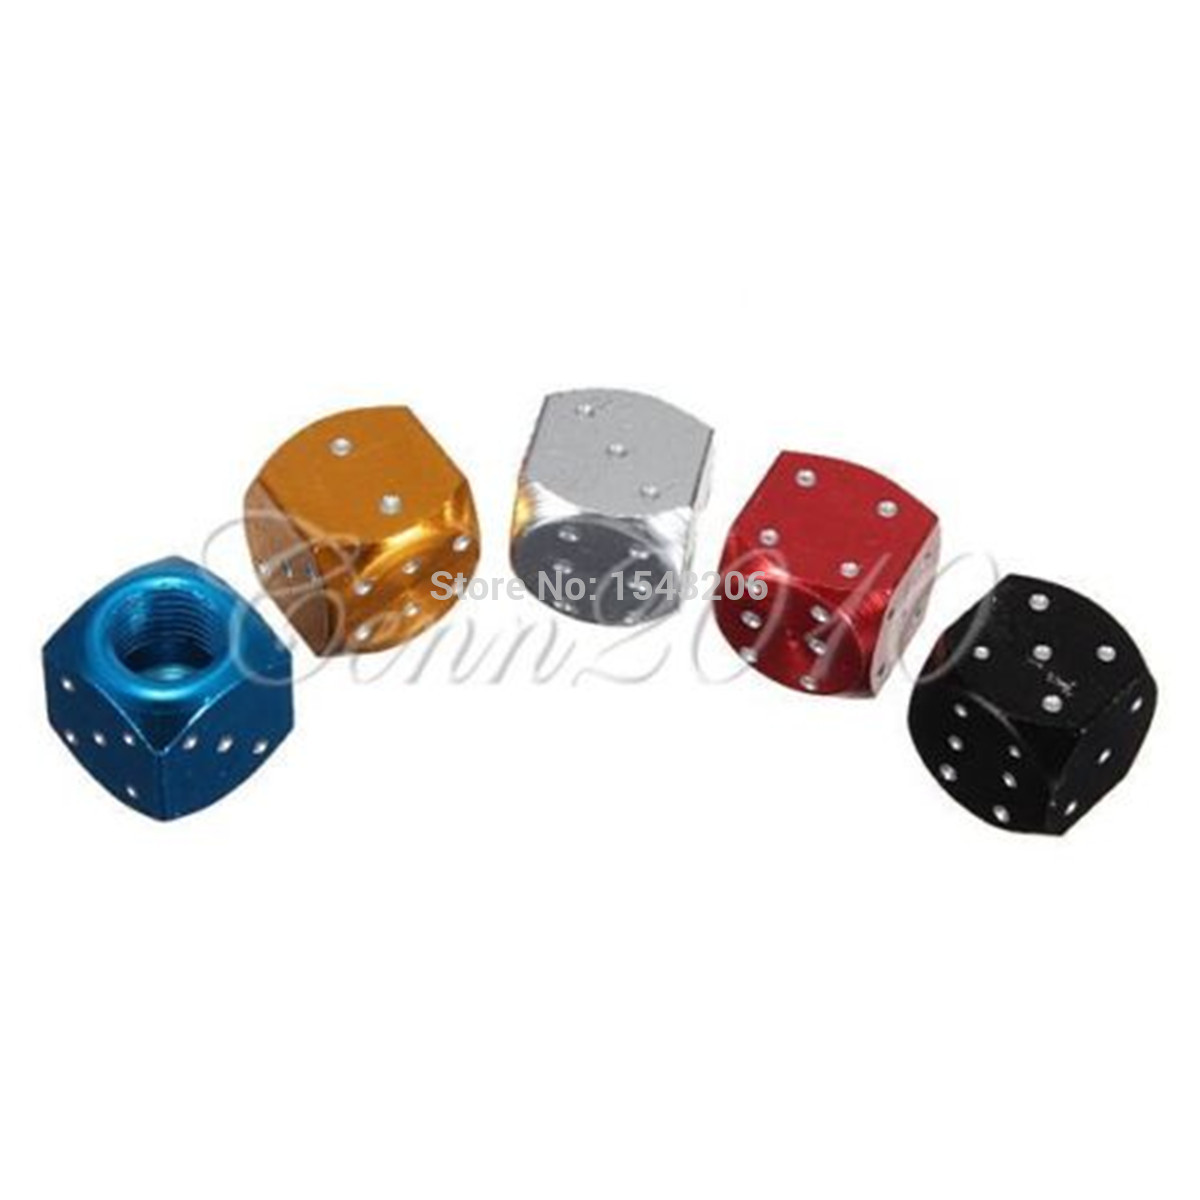 Aluminum Dice Style Y-SPACE 5 Pieces Car Truck Motorcycle Wheel Tyre Valve Caps Bicycle Tire Air Valve Cover Red Green